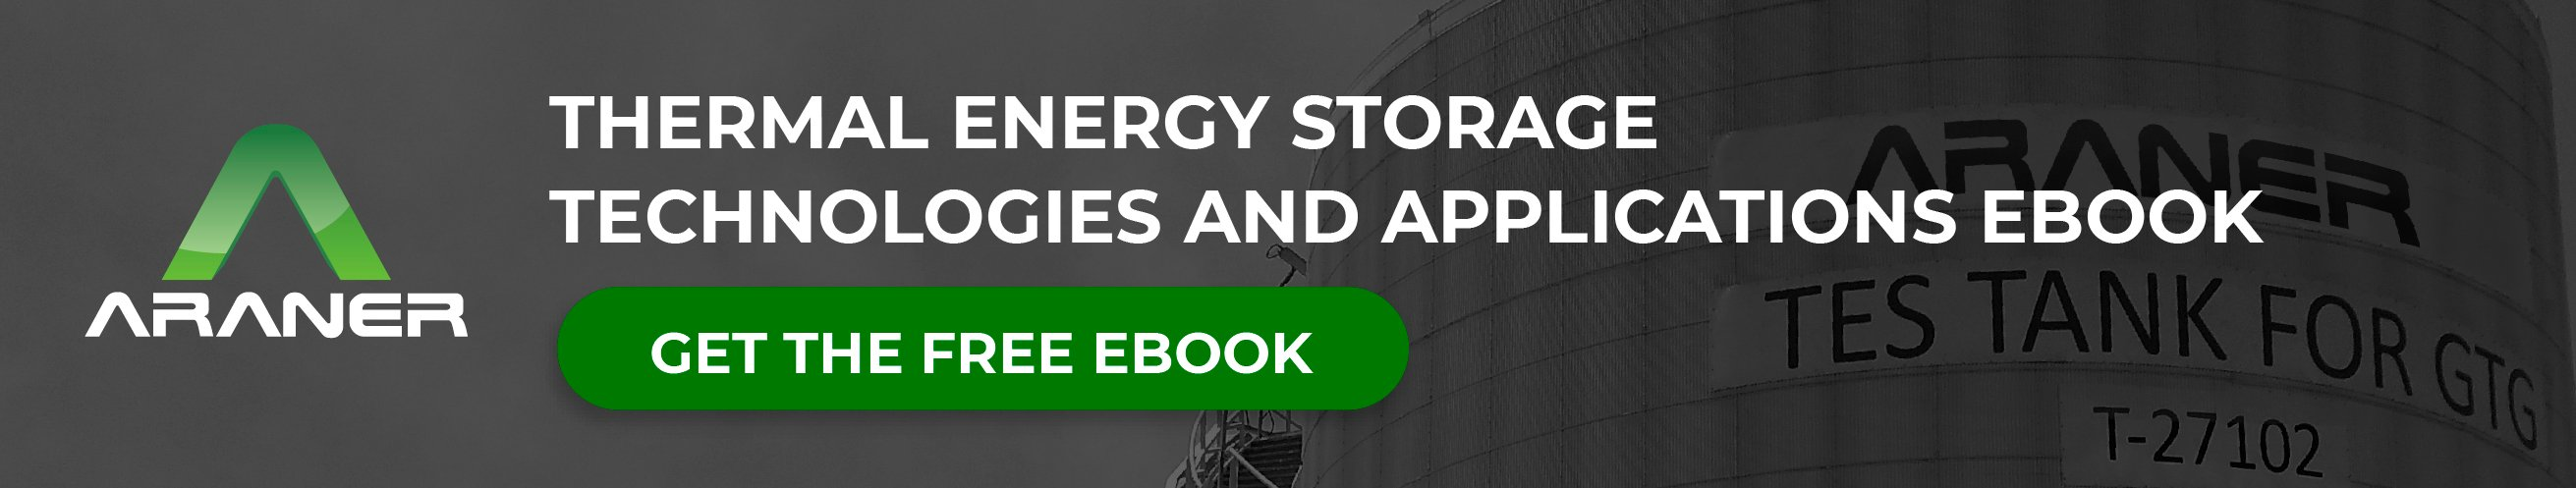 thermal energy storage technologies and applications ebook post